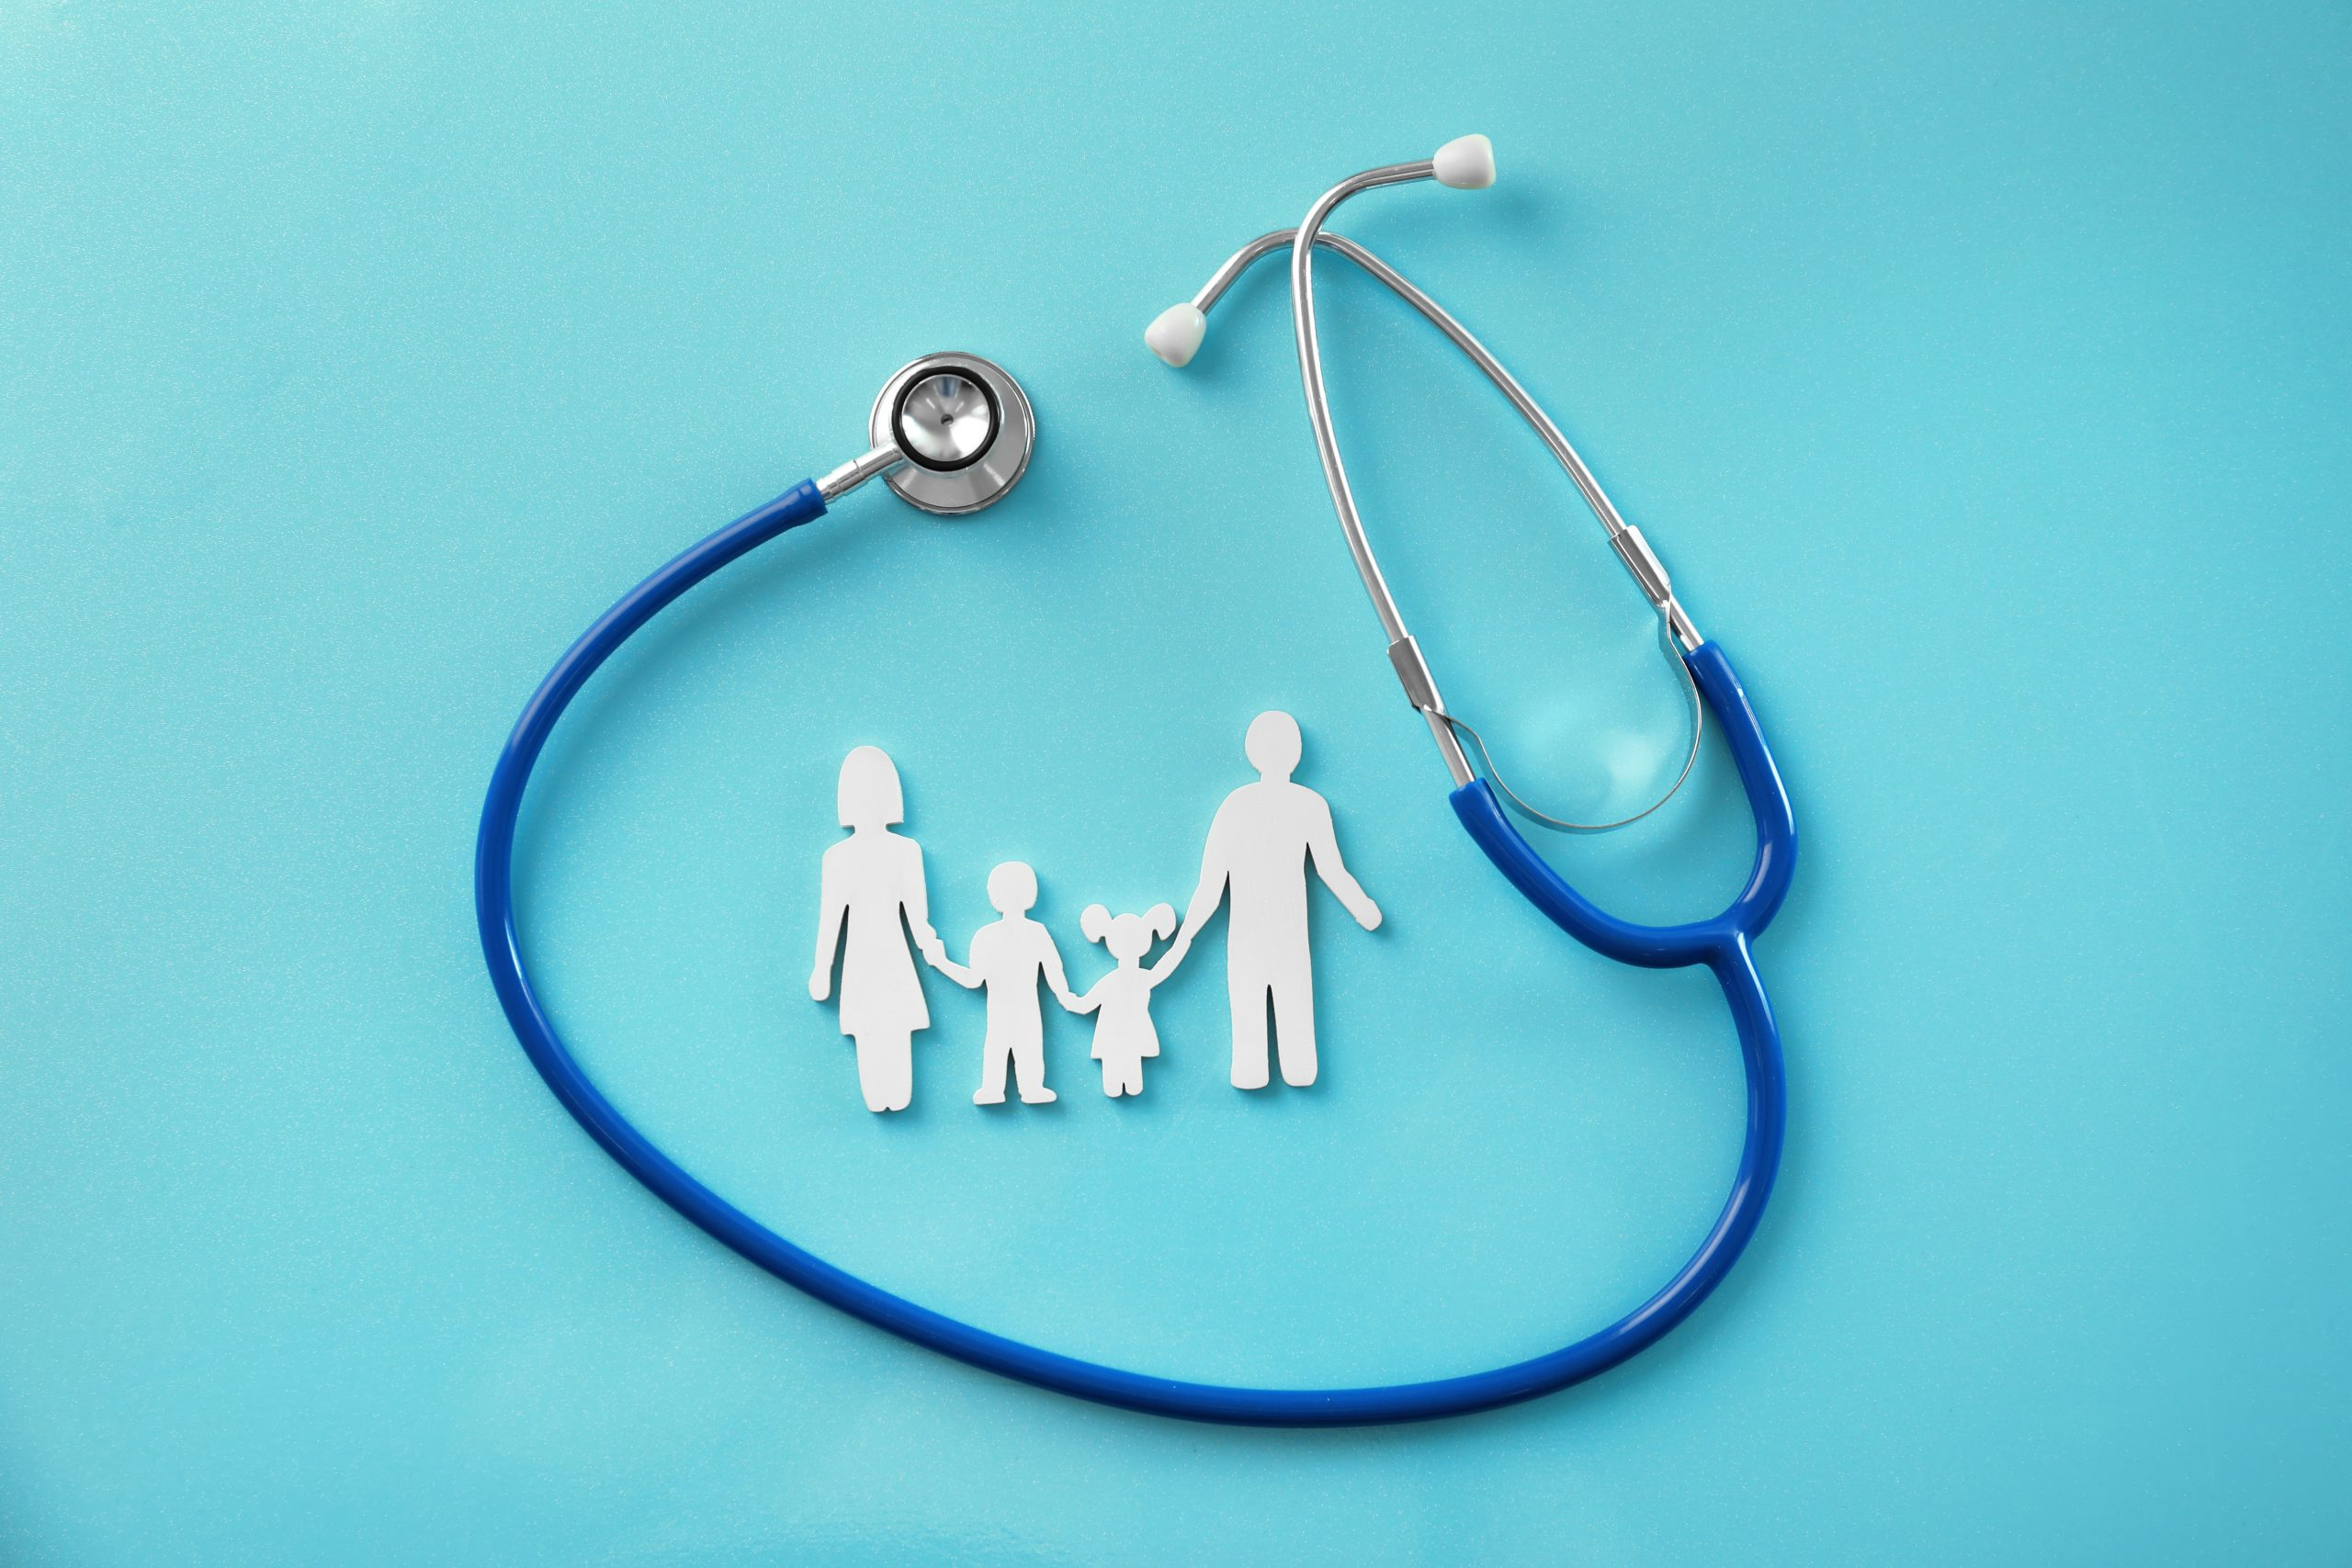 stethoscope with paper cutout of family